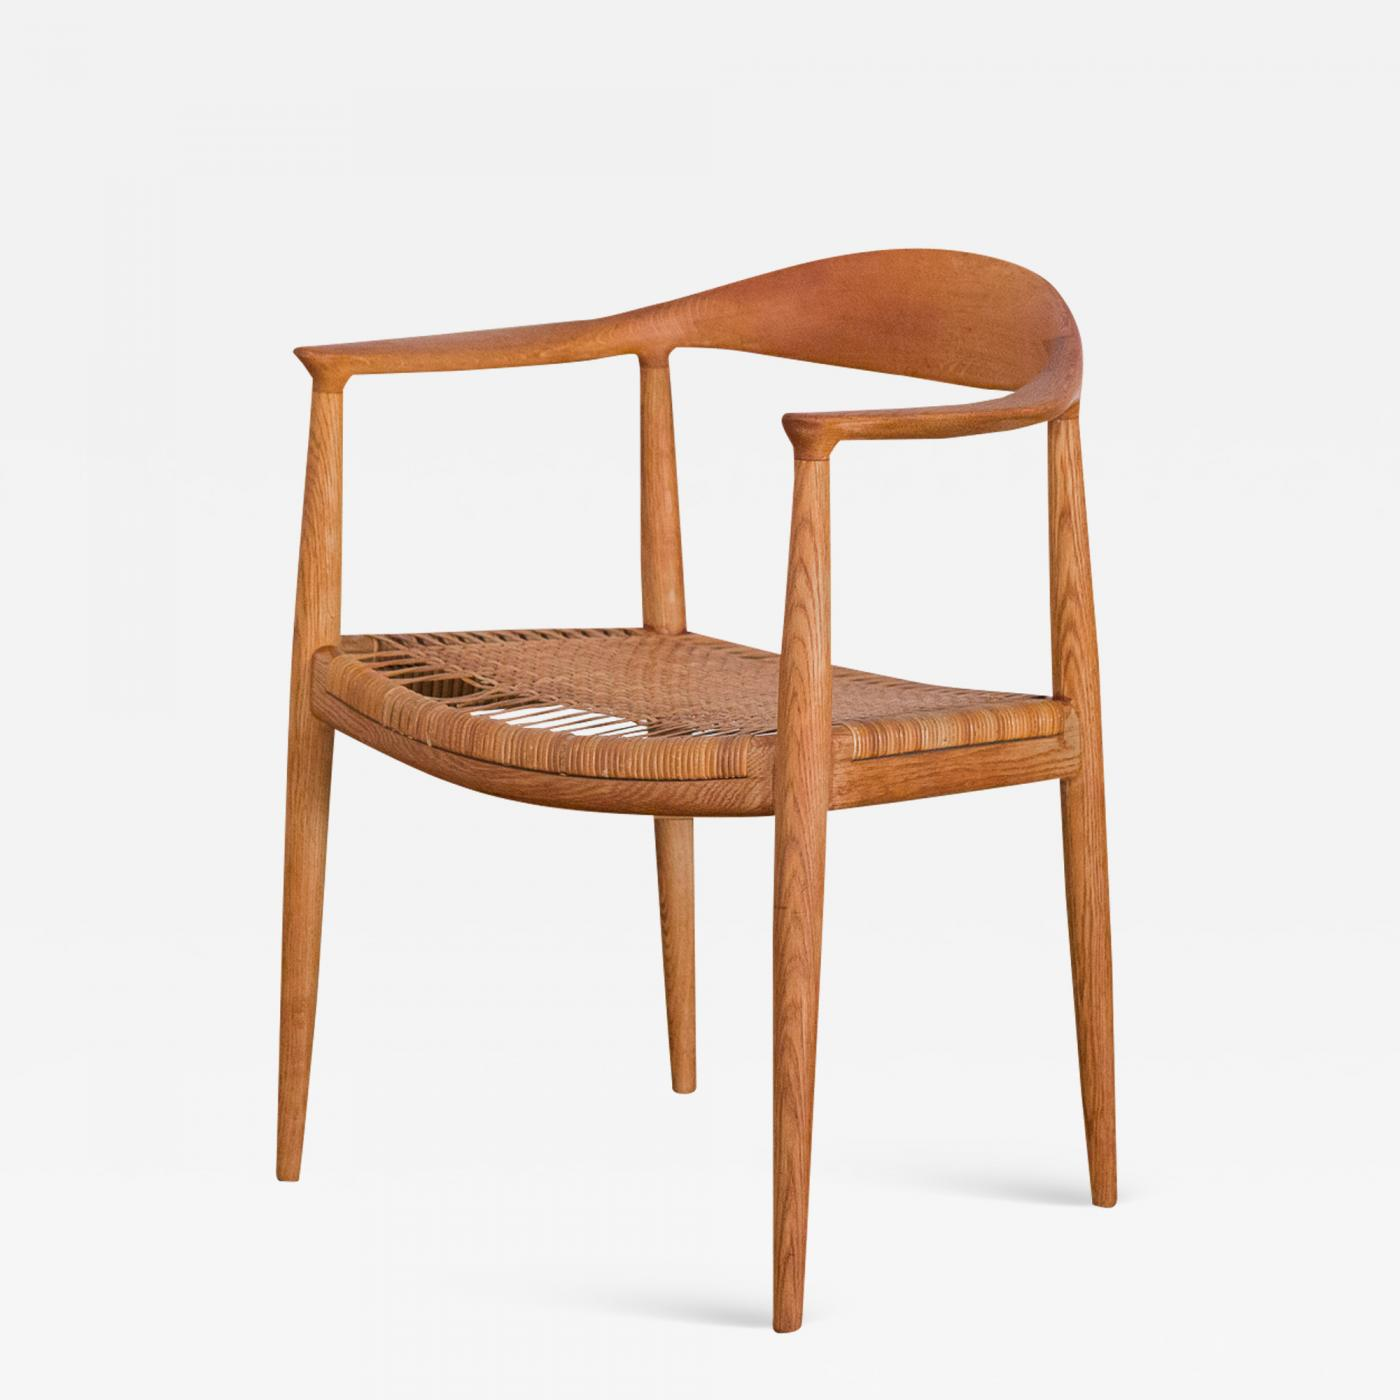 Wondrous Hans Wegner Hans Wegner Cane Dining Chair Ncnpc Chair Design For Home Ncnpcorg